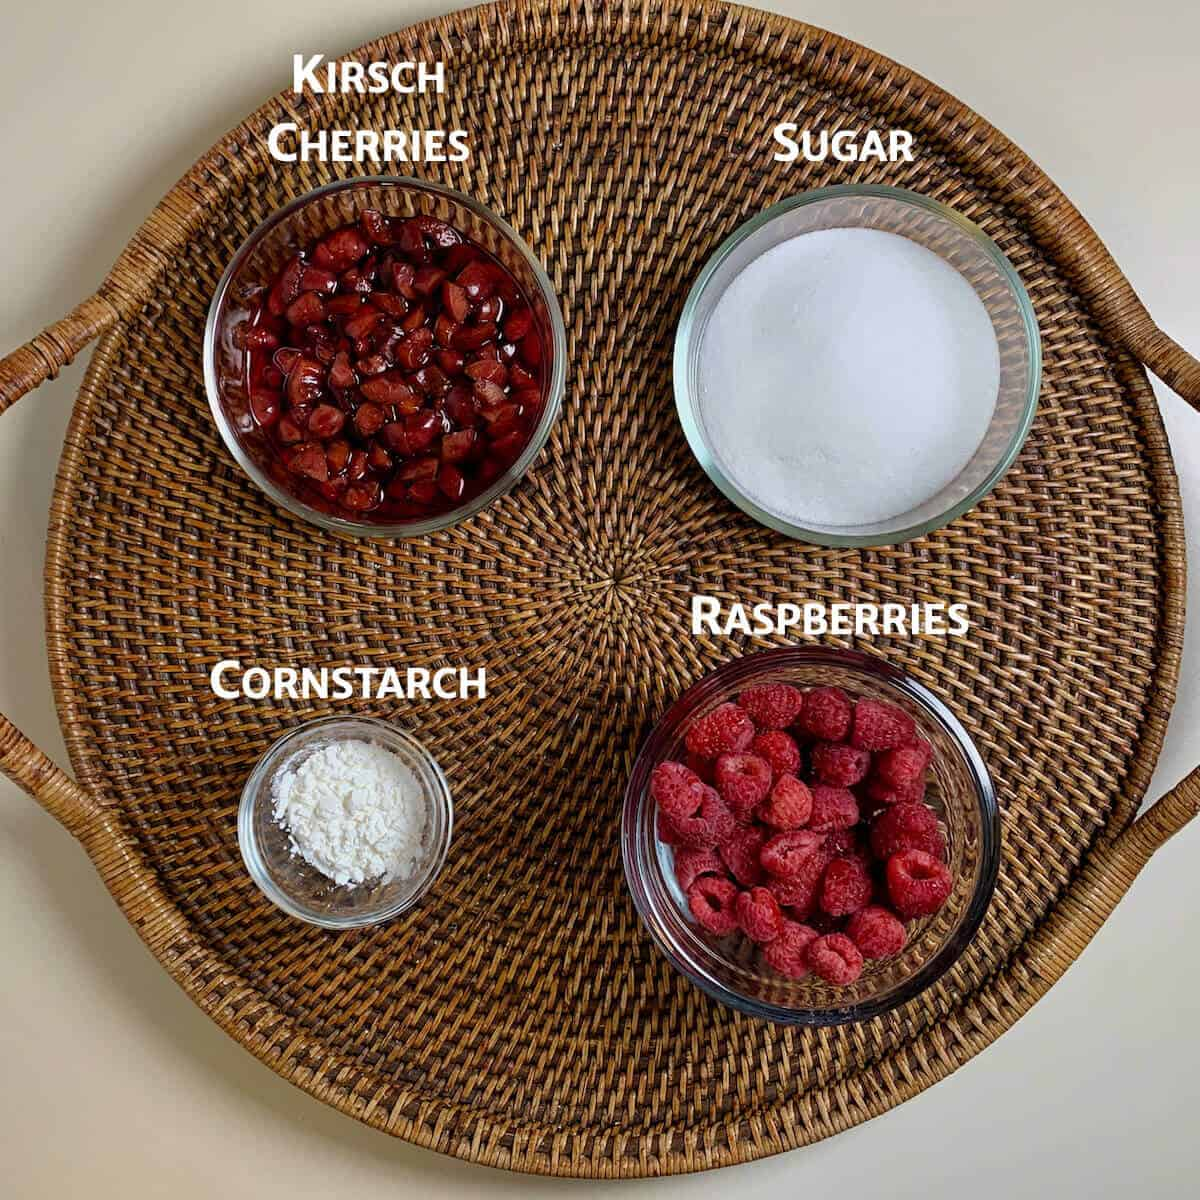 Raspberry & Kirsch cherry Jam ingredients on a wooden tray from overhead.